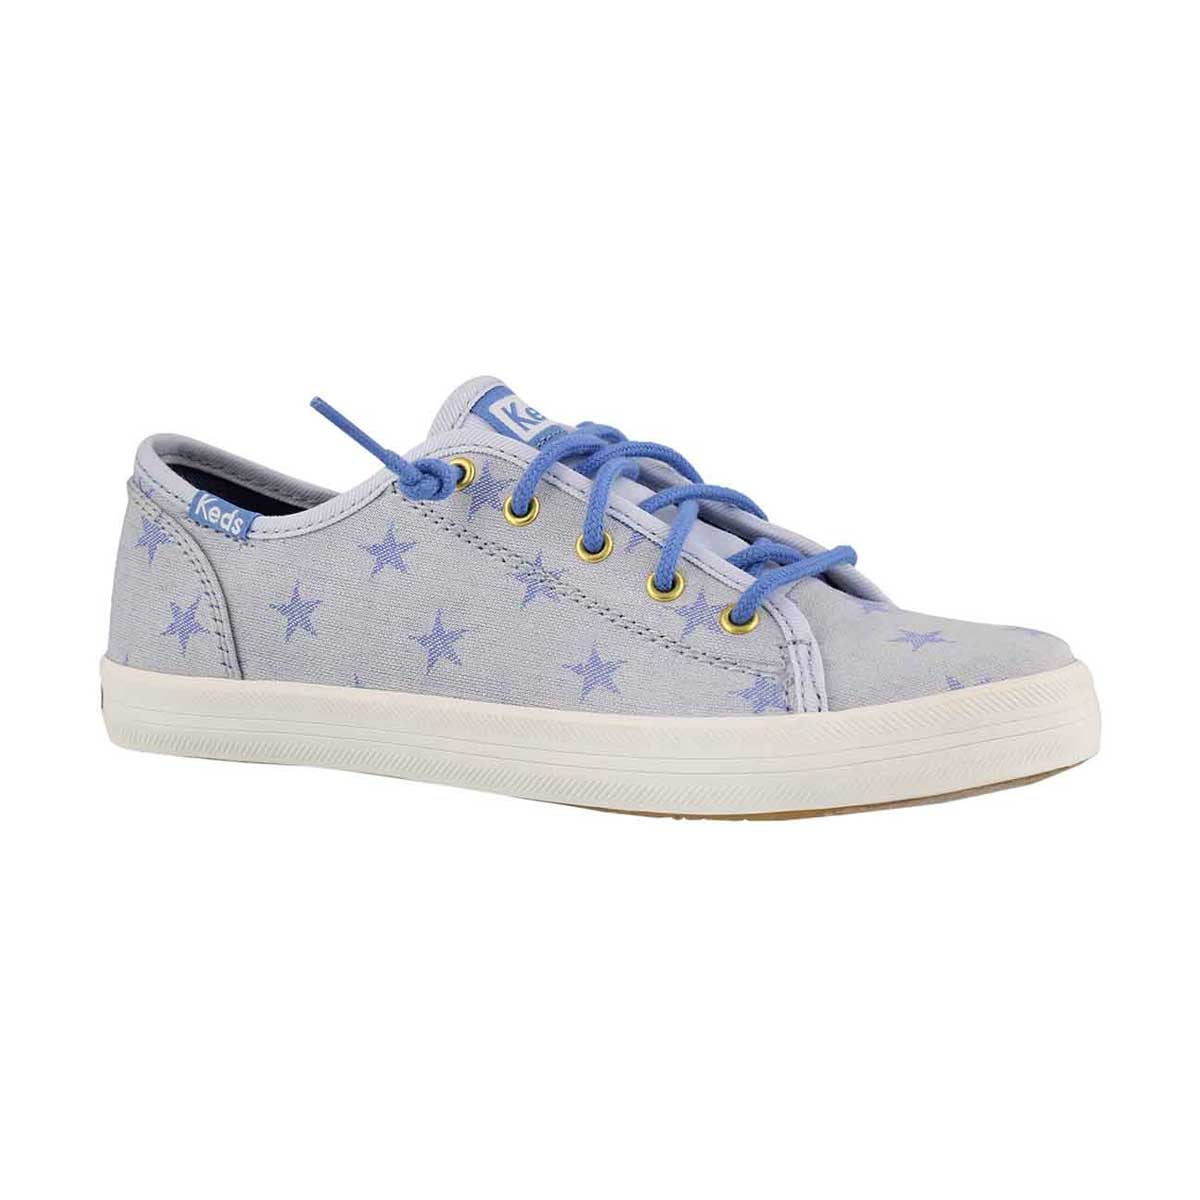 Girls' KICKSTART SEASONAL star sneakers